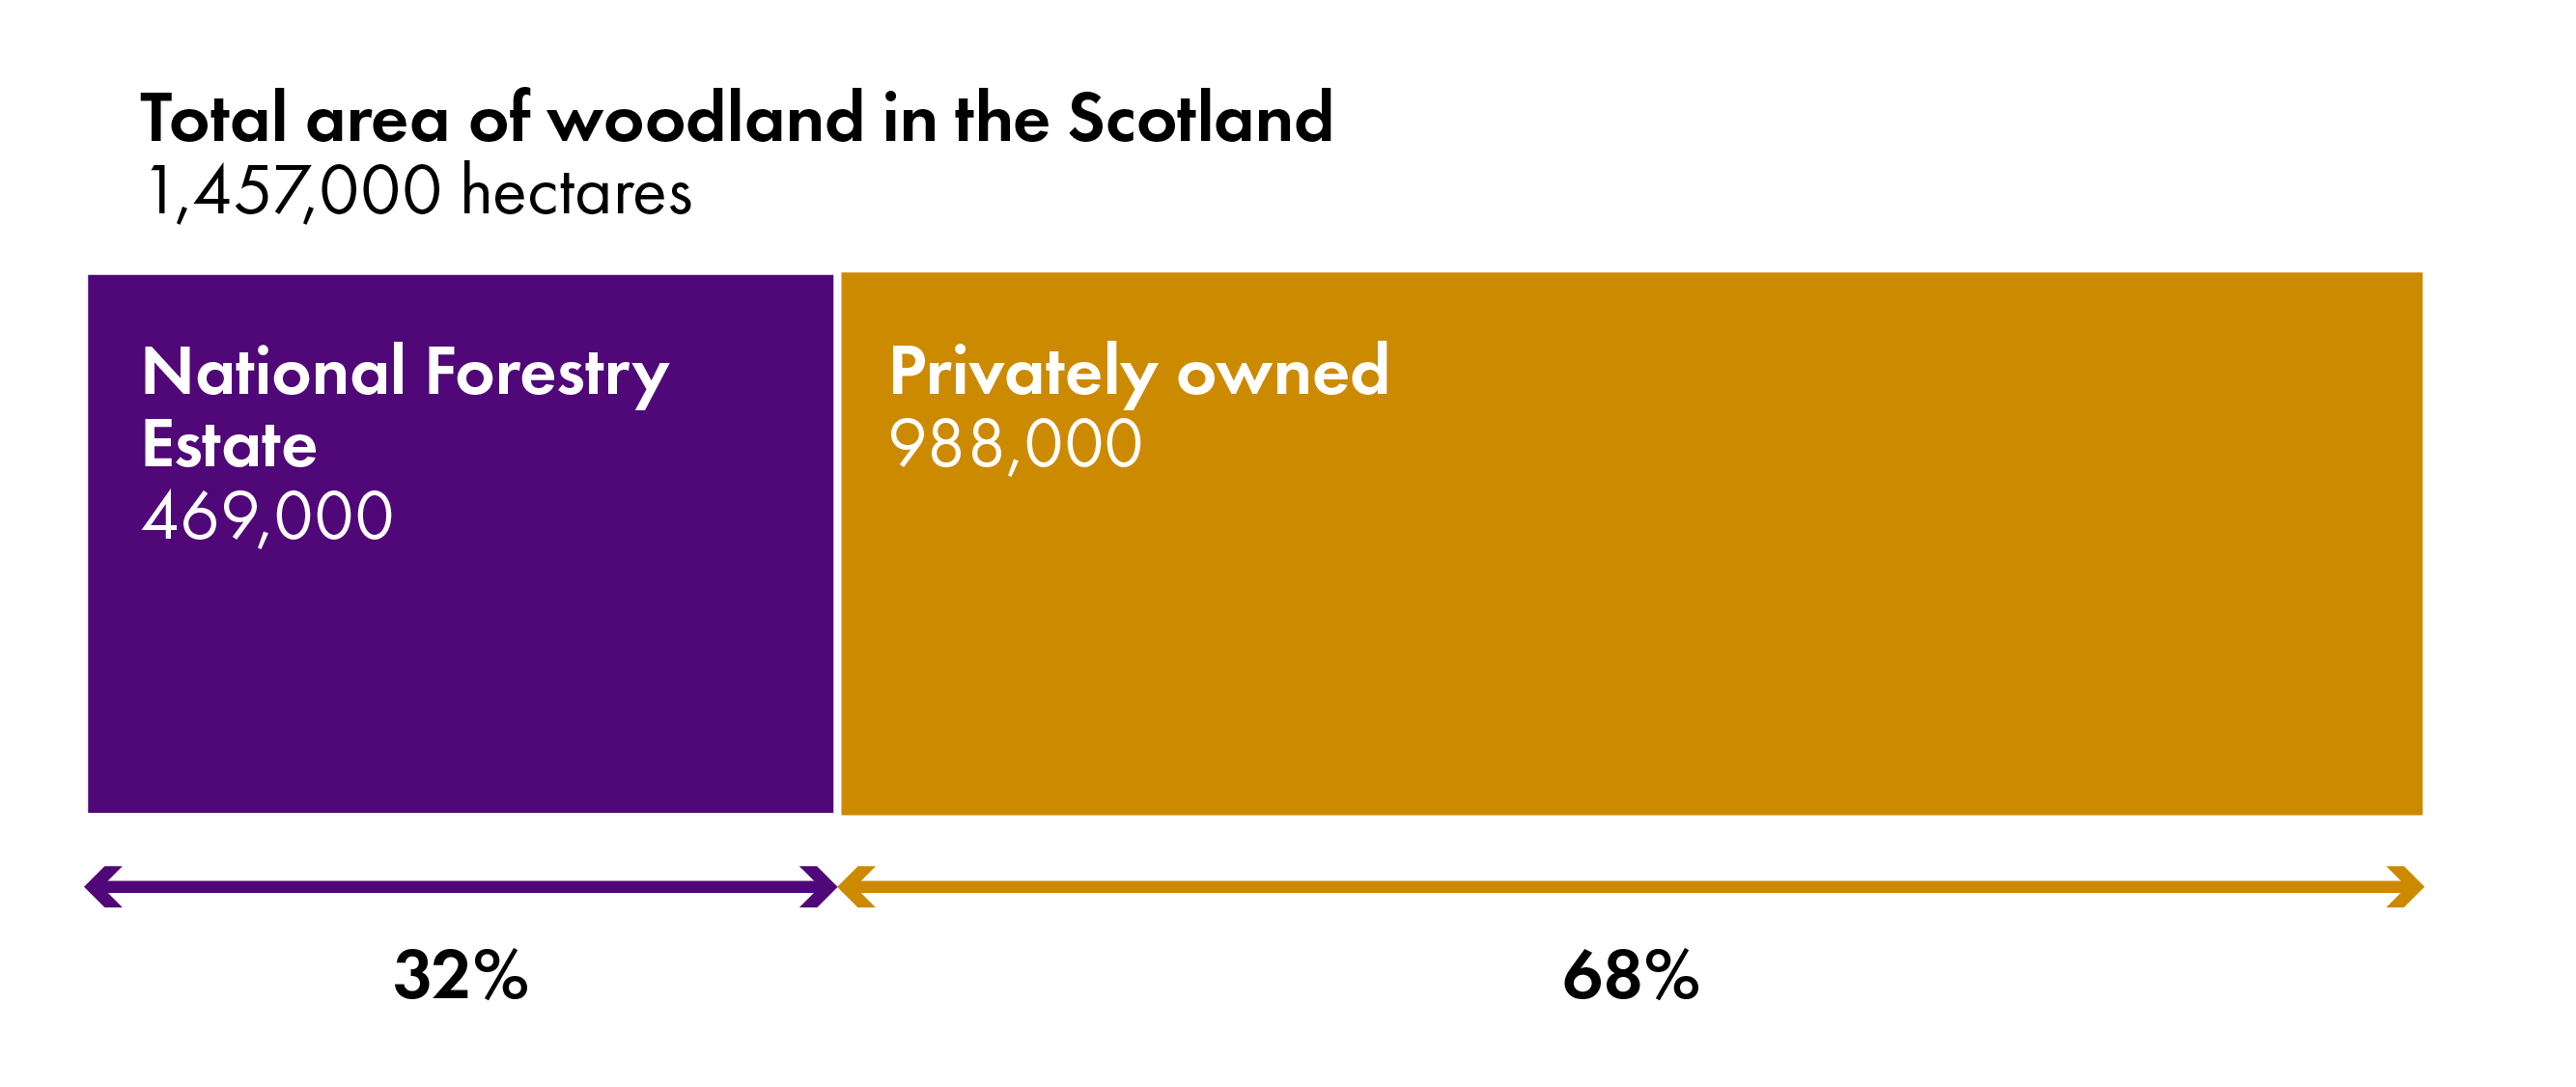 The majority of Scotland's woodlands are privately owned